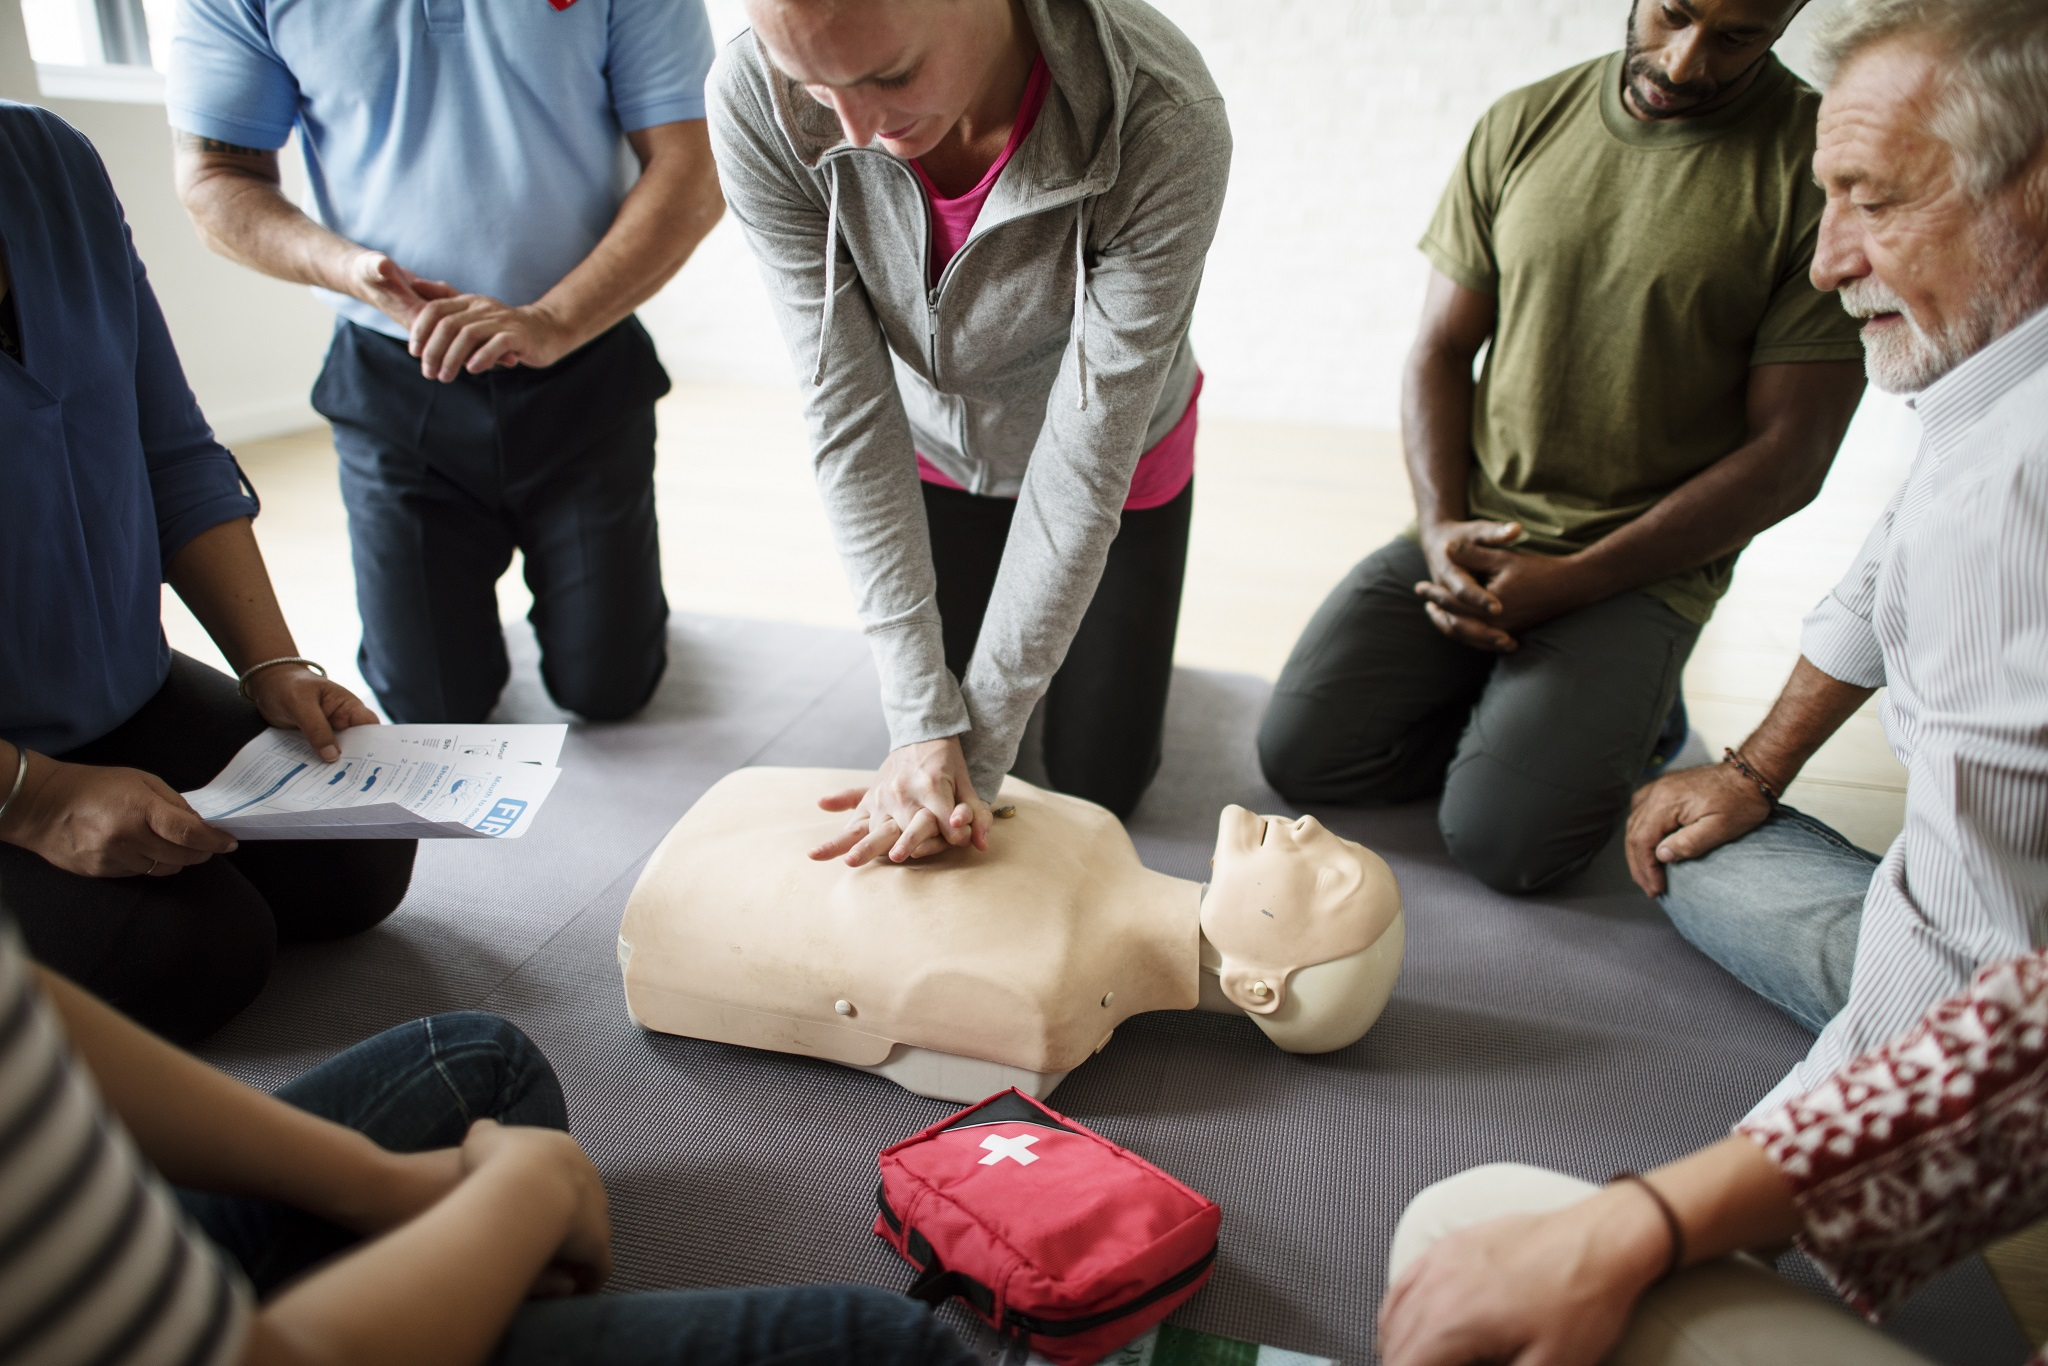 CPR, AED and Basic First Aid